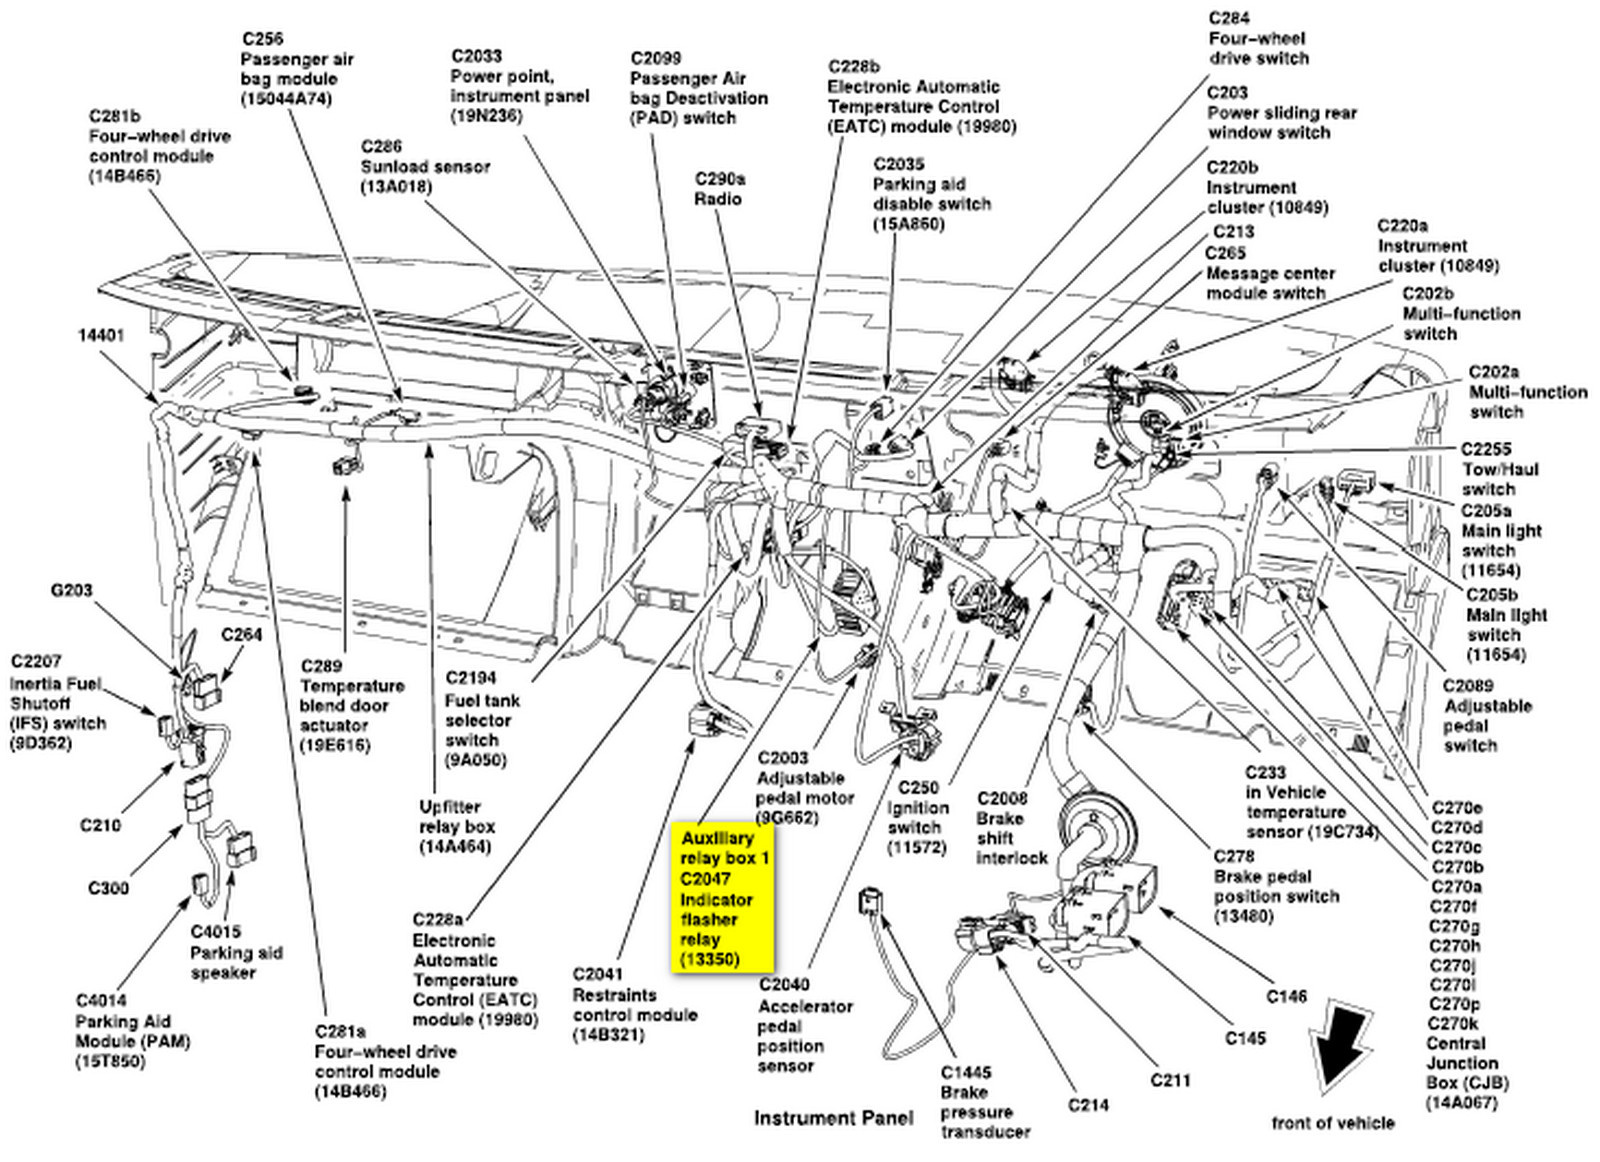 Post 93 F150 Brake Line Diagram 499891 as well 44s3u 1986 F350 Wiring The Starter Relay Includes Resistor Wire Melted additionally Discussion T60374 ds560387 likewise 2006 Chrysler Pt Cruiser Fuse Box Location additionally 1338085 Ford Truck Information And Then Some. on 2007 ford e250 wiring diagram